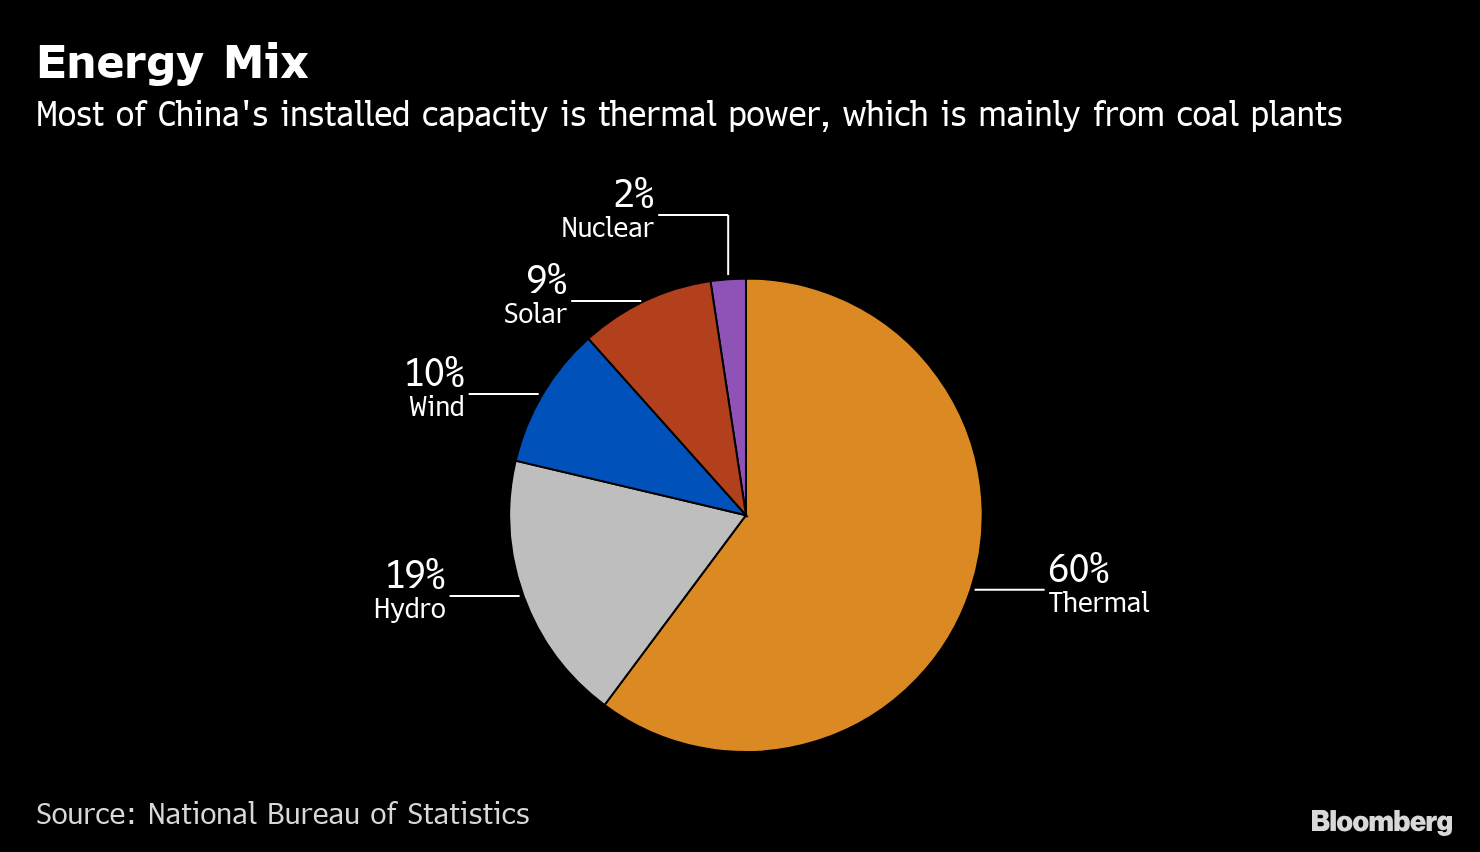 New Coal Plants Are Just Too Expensive in China, Analysis Says